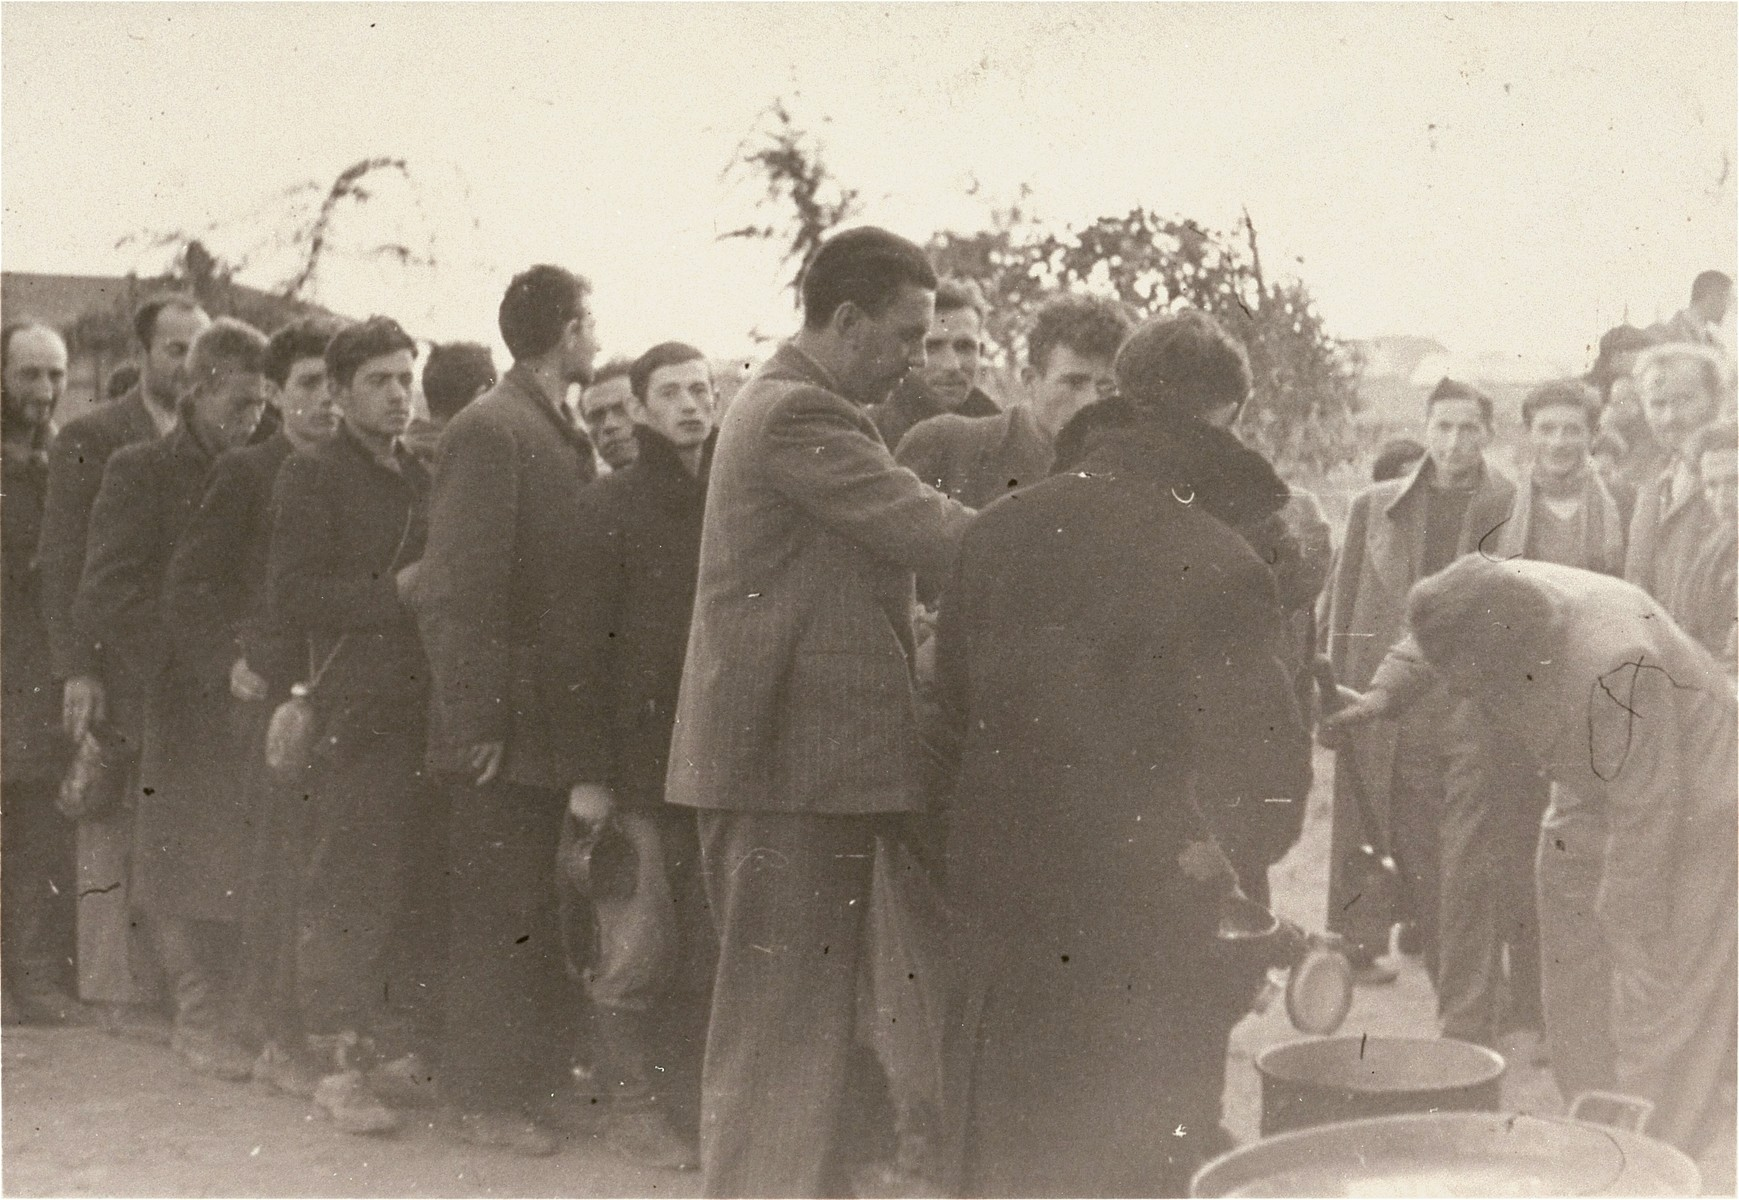 """[Probably, Polish and Jewish civilians interned by the SD in a temporary holding center lining up for food.]  These prisoners may be what the Germans called """"Wehrfaehige,"""" or persons capable of carrying arms, who were often summarily interned during and immediately after the Polish campaign as a security measure.   One of twenty-six images of Einsatzgruppen activities in Poland in 1939, found by Joseph Igra after the war, in a an album in an apartment in Sosnowiec."""